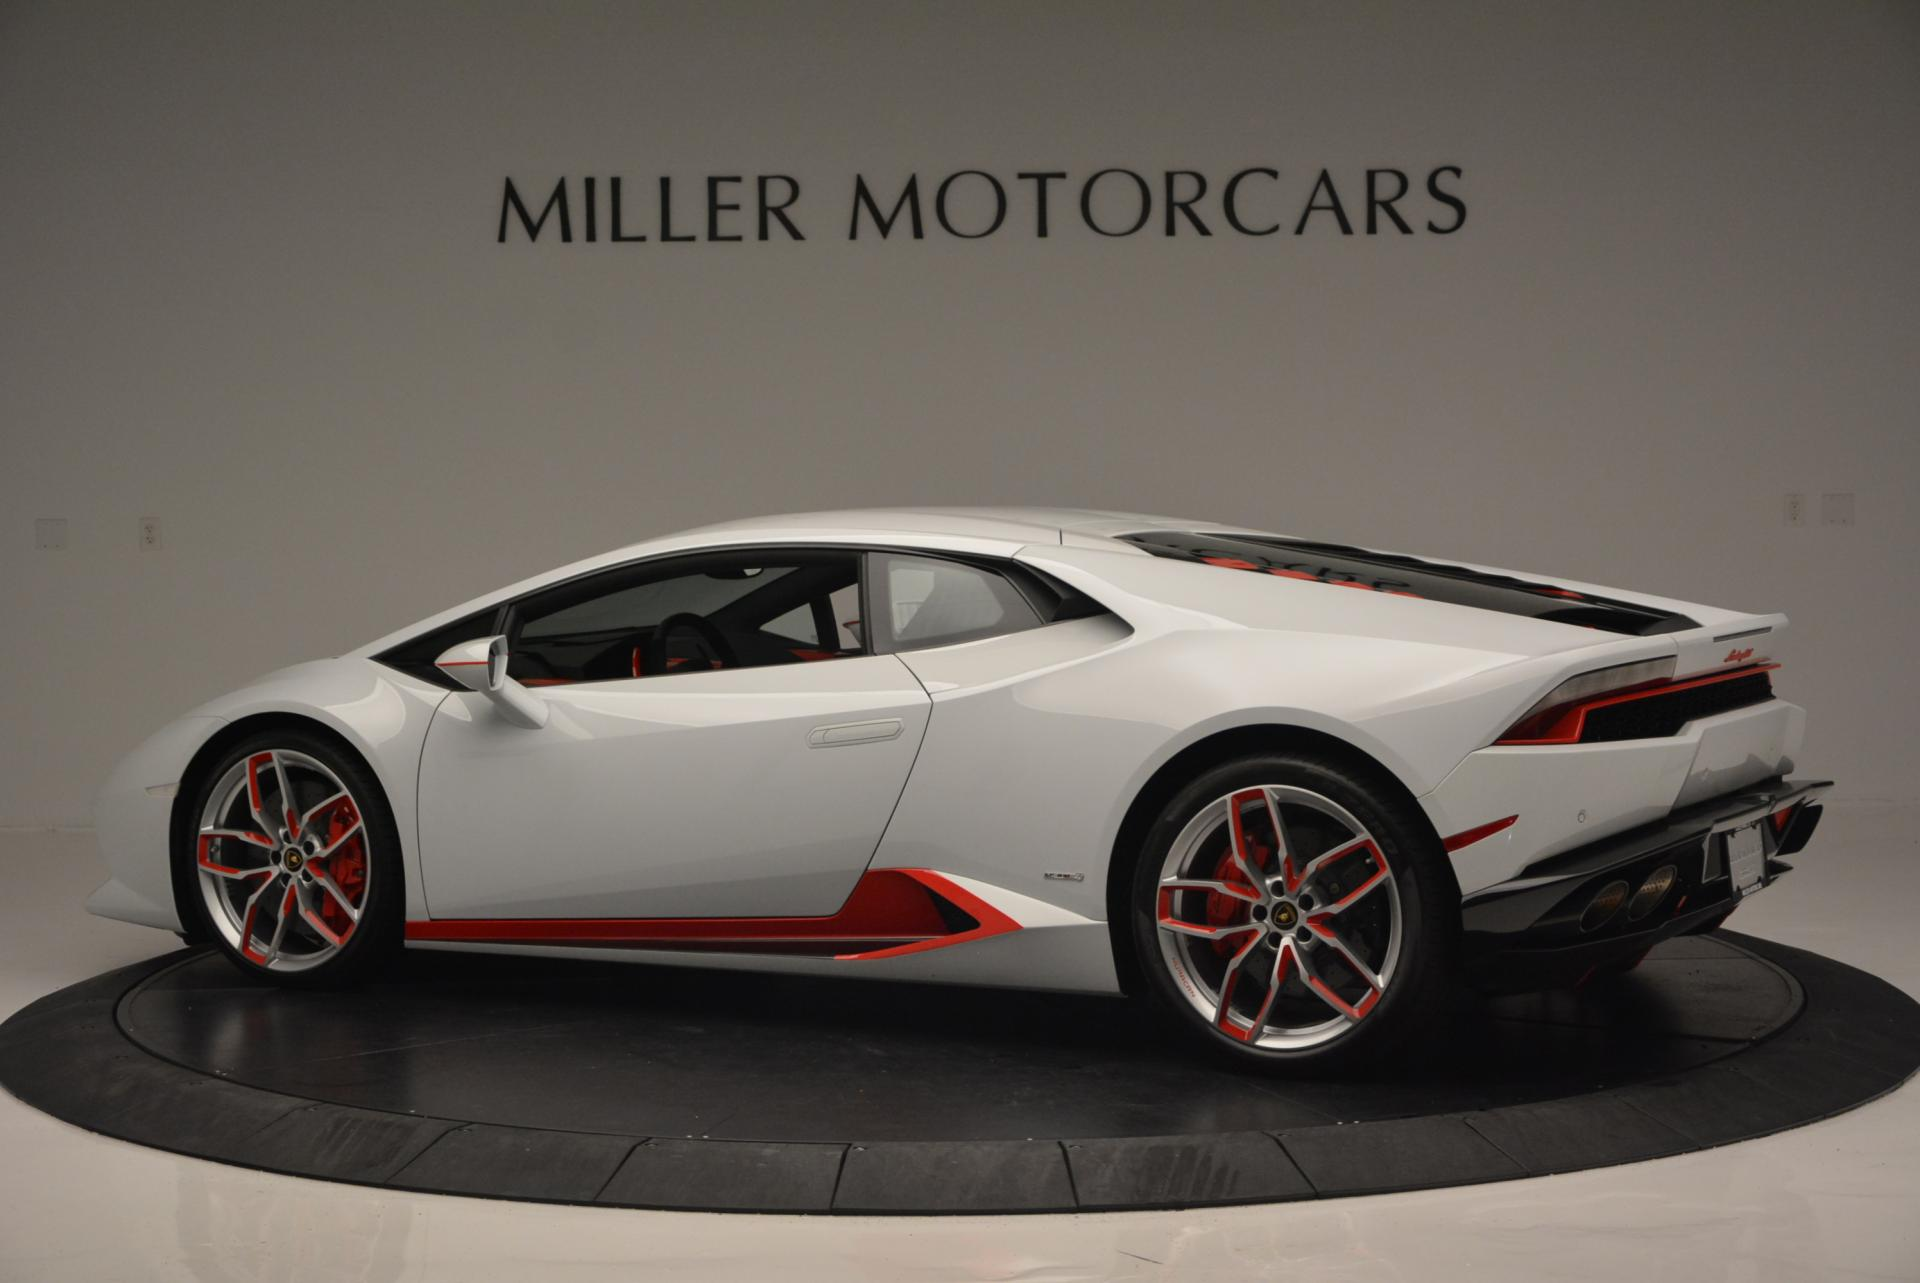 Used 2015 Lamborghini Huracan LP610-4 For Sale In Greenwich, CT 114_p4